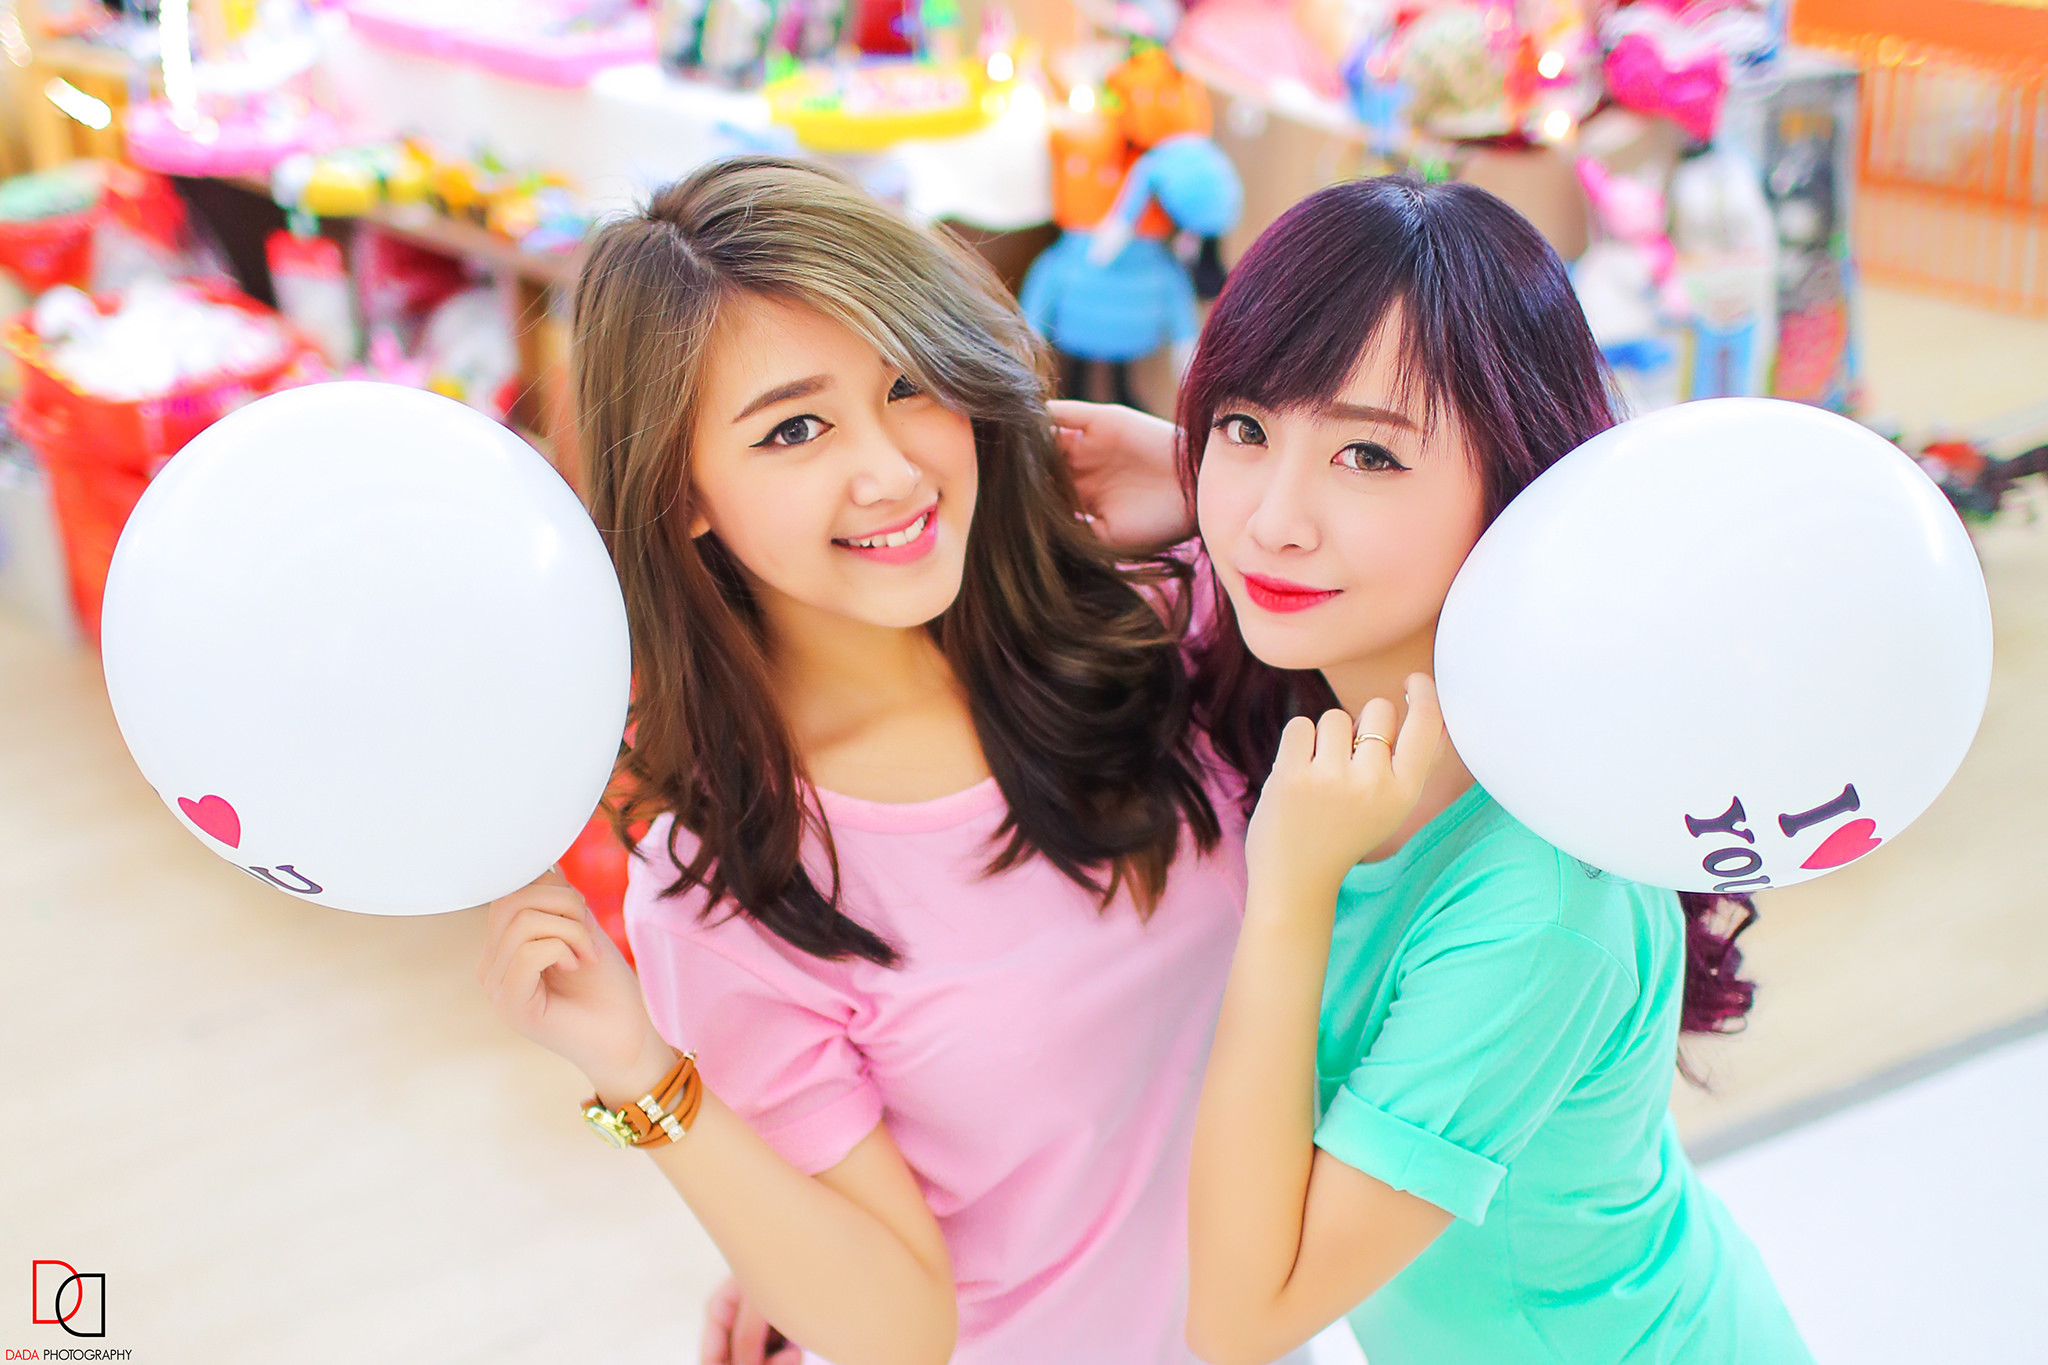 Cute Wallpapers For Teenage Girls 29 Images